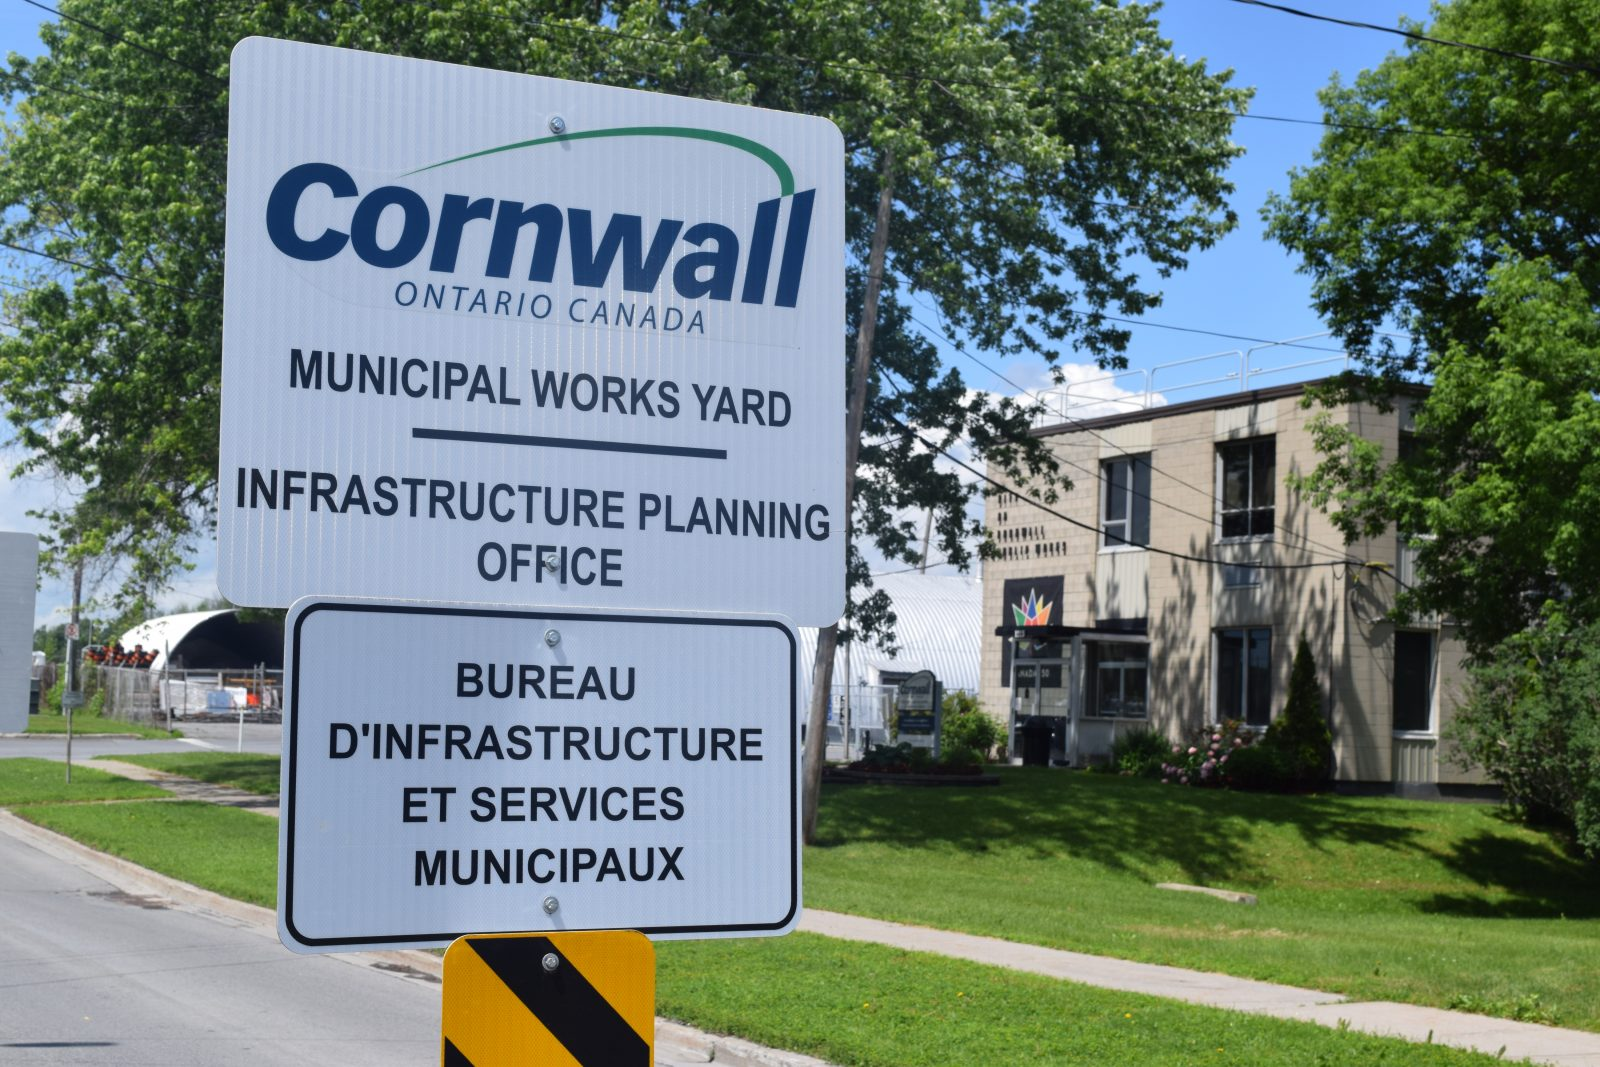 Councillor concerned about rising costs of new Municipal Yard